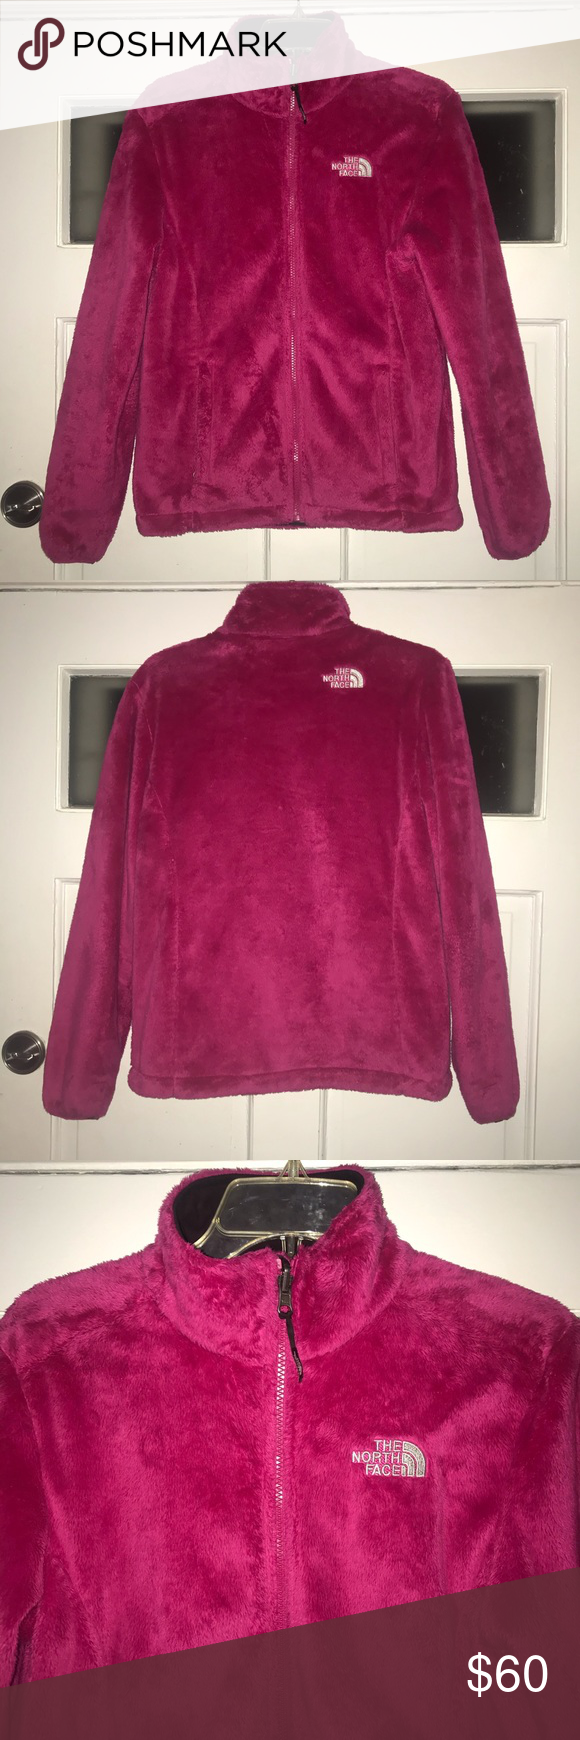 Fuzzy North Face Hot Pink Hot Pink Fuzzy North Face Jacket Warm And Cozy Perfect For Fall And Winter Great Conditio North Face Jacket The North Face Hot Pink [ 1740 x 580 Pixel ]